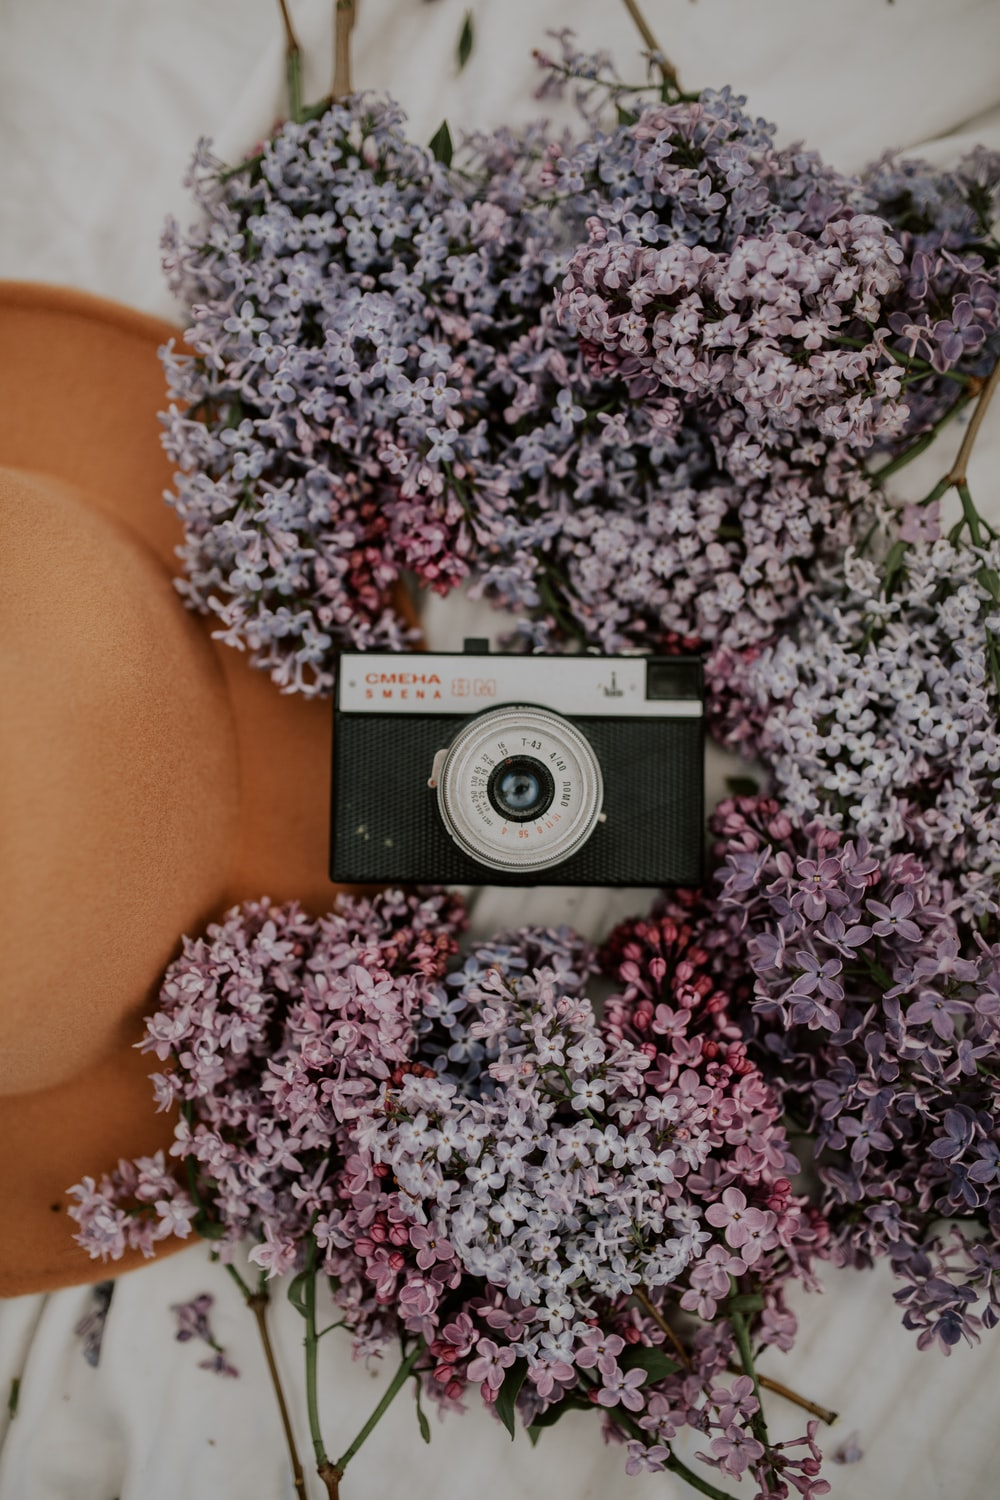 black and silver camera on purple flowers